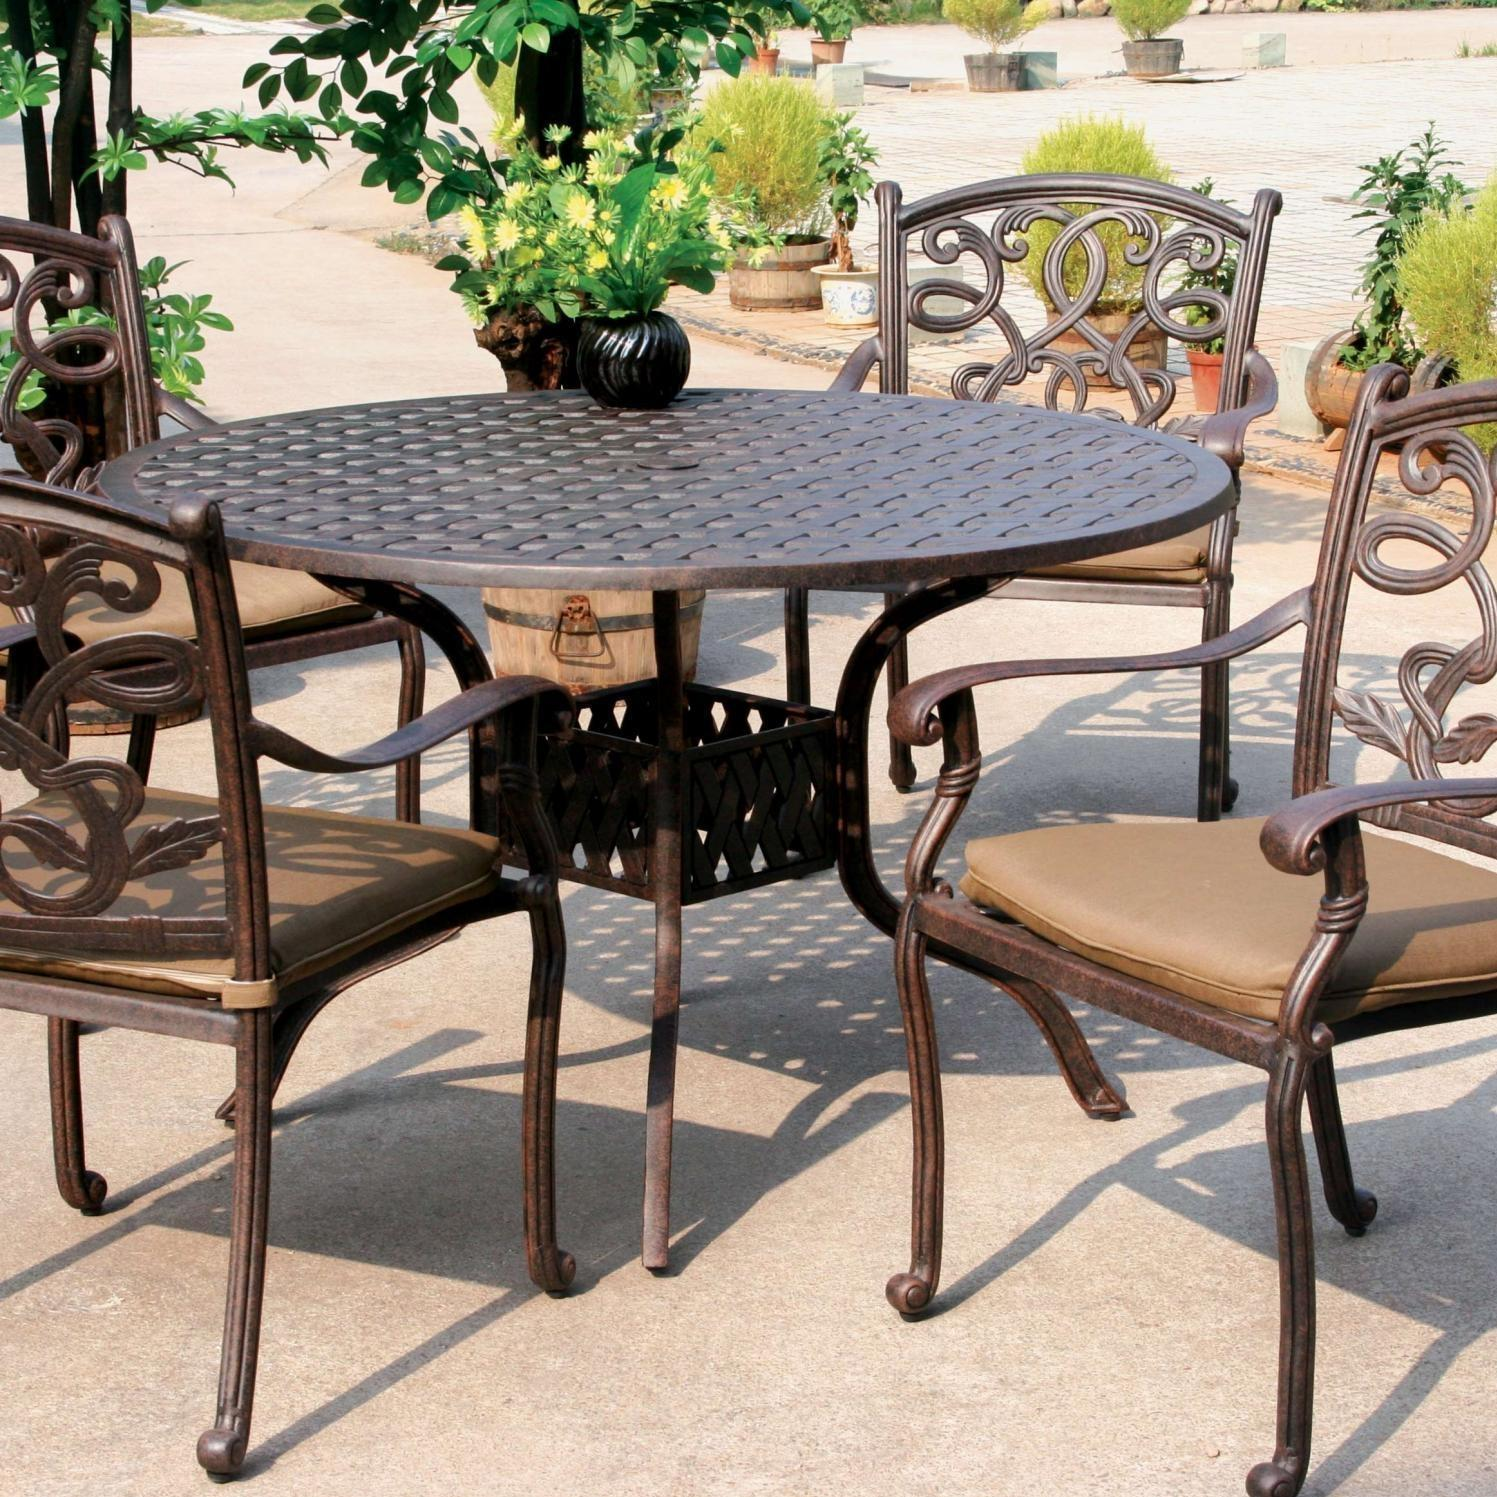 Aluminum patio dining furniture cast aluminum patio for Aluminum patio furniture